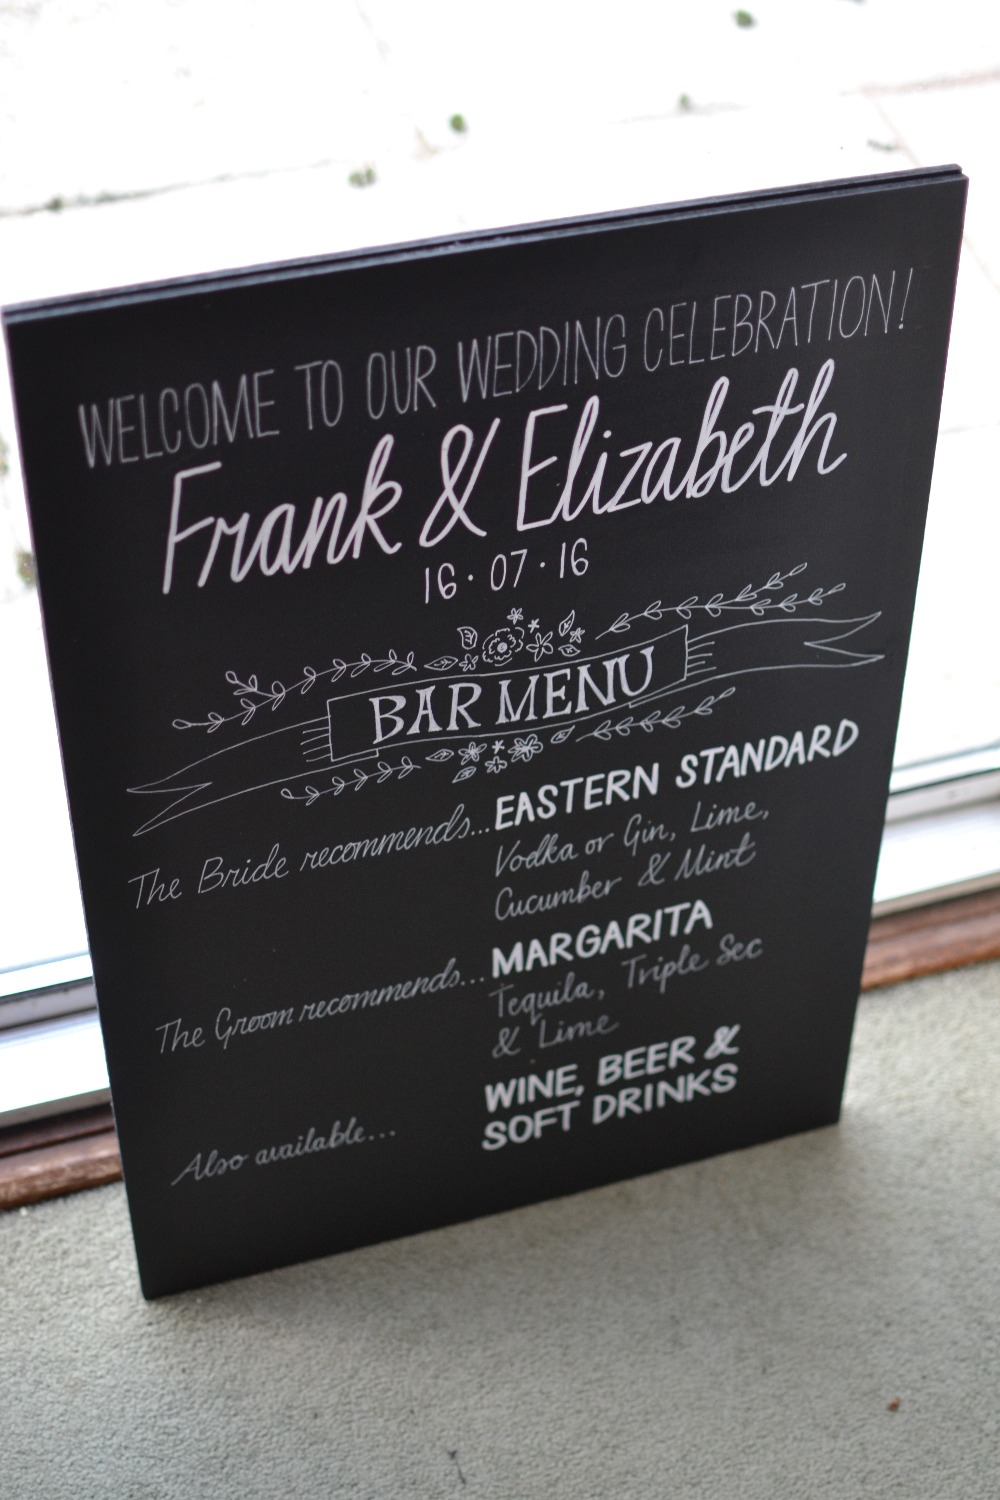 Frank & Elizabeth Wedding Chalkboards - July 2016 (21)_edited